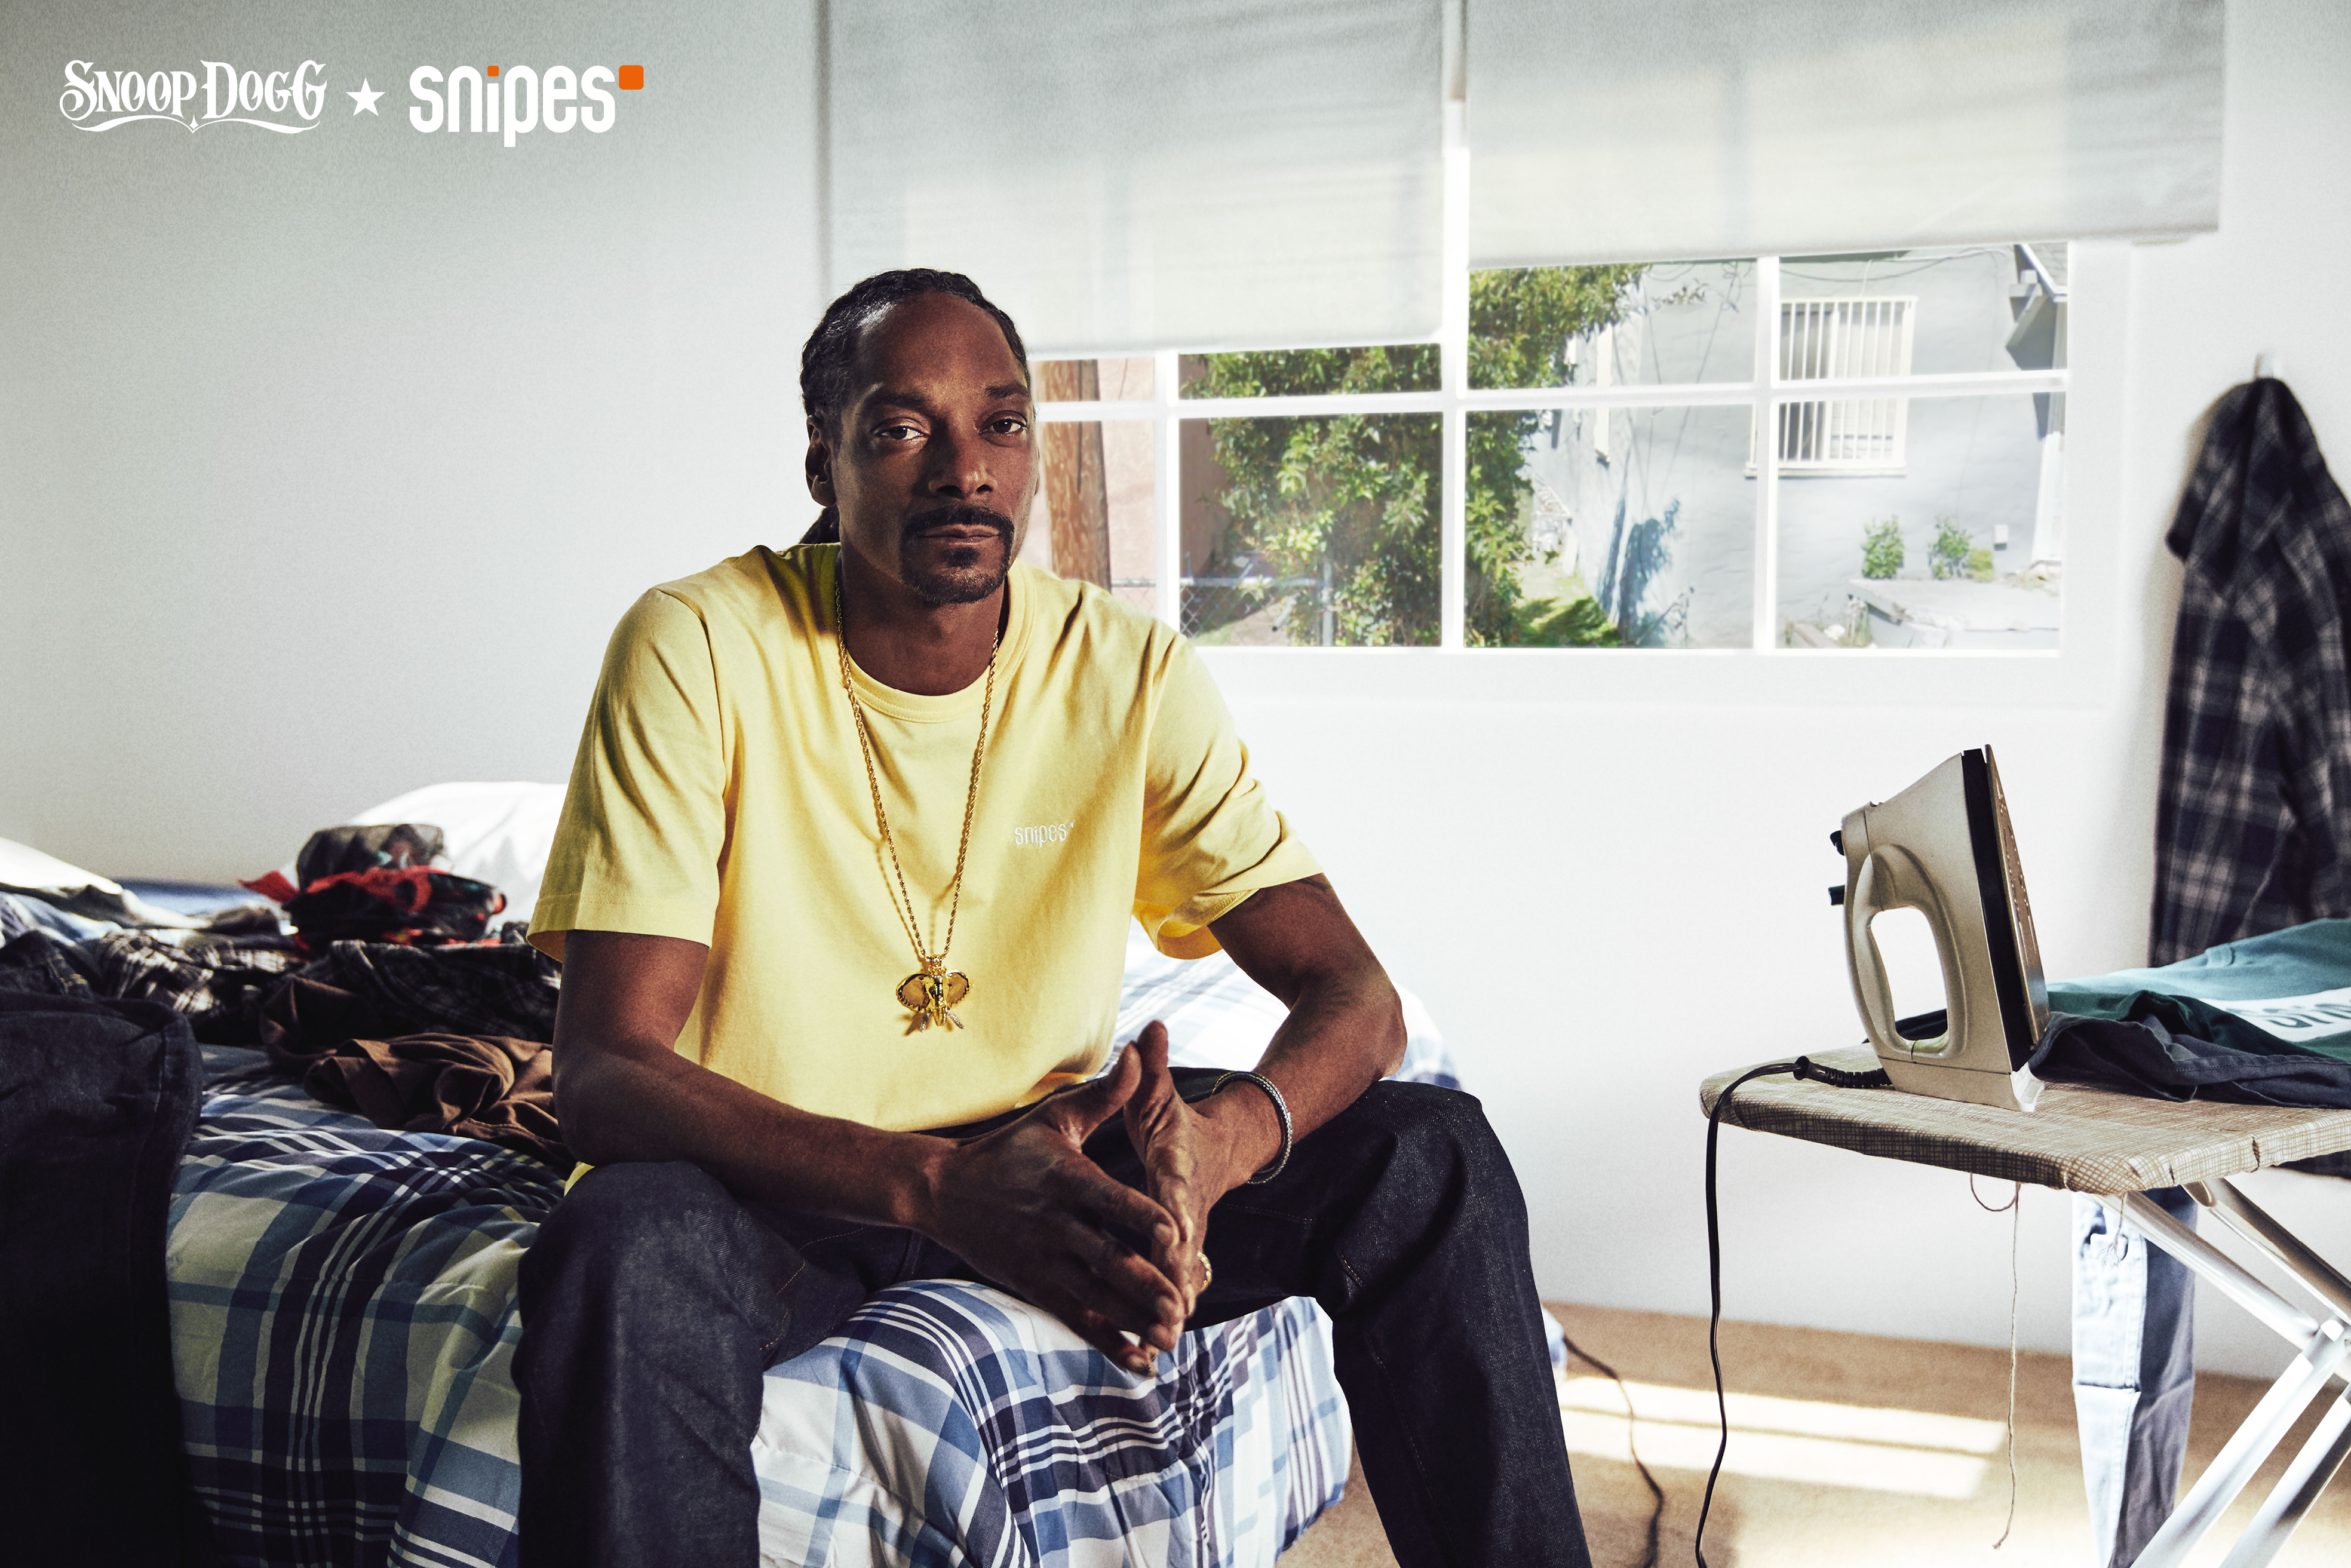 SNIPES Snoop Dogg Sneakers Fashion